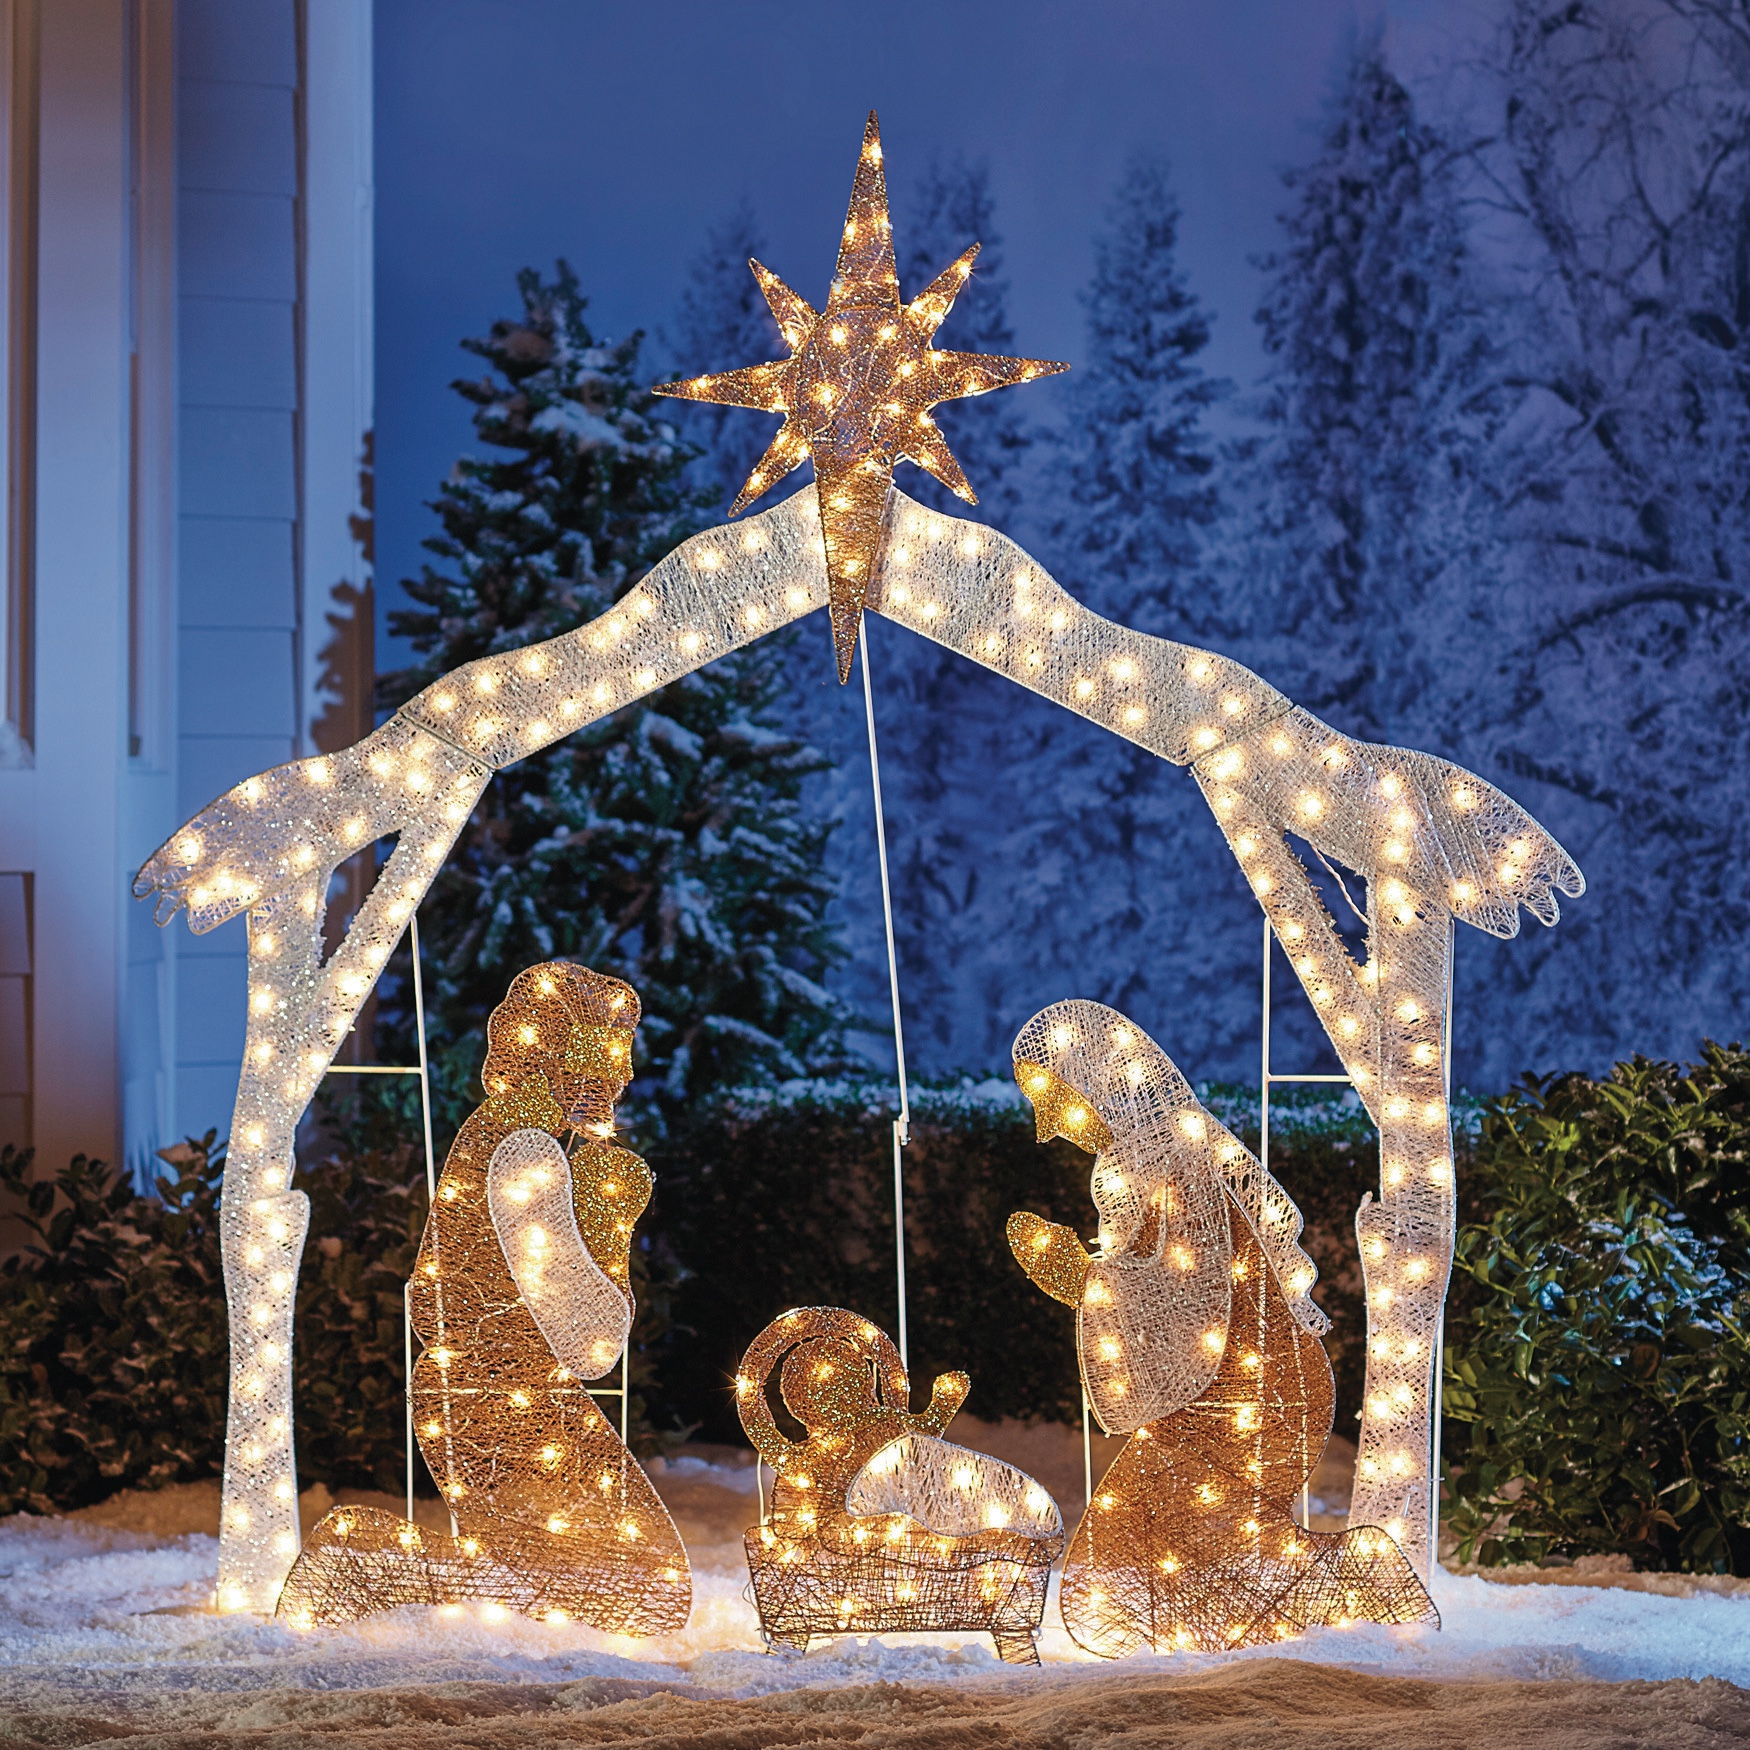 crystal splendor outdoor nativity scene white - Outdoor Christmas Decorations Nativity Scene